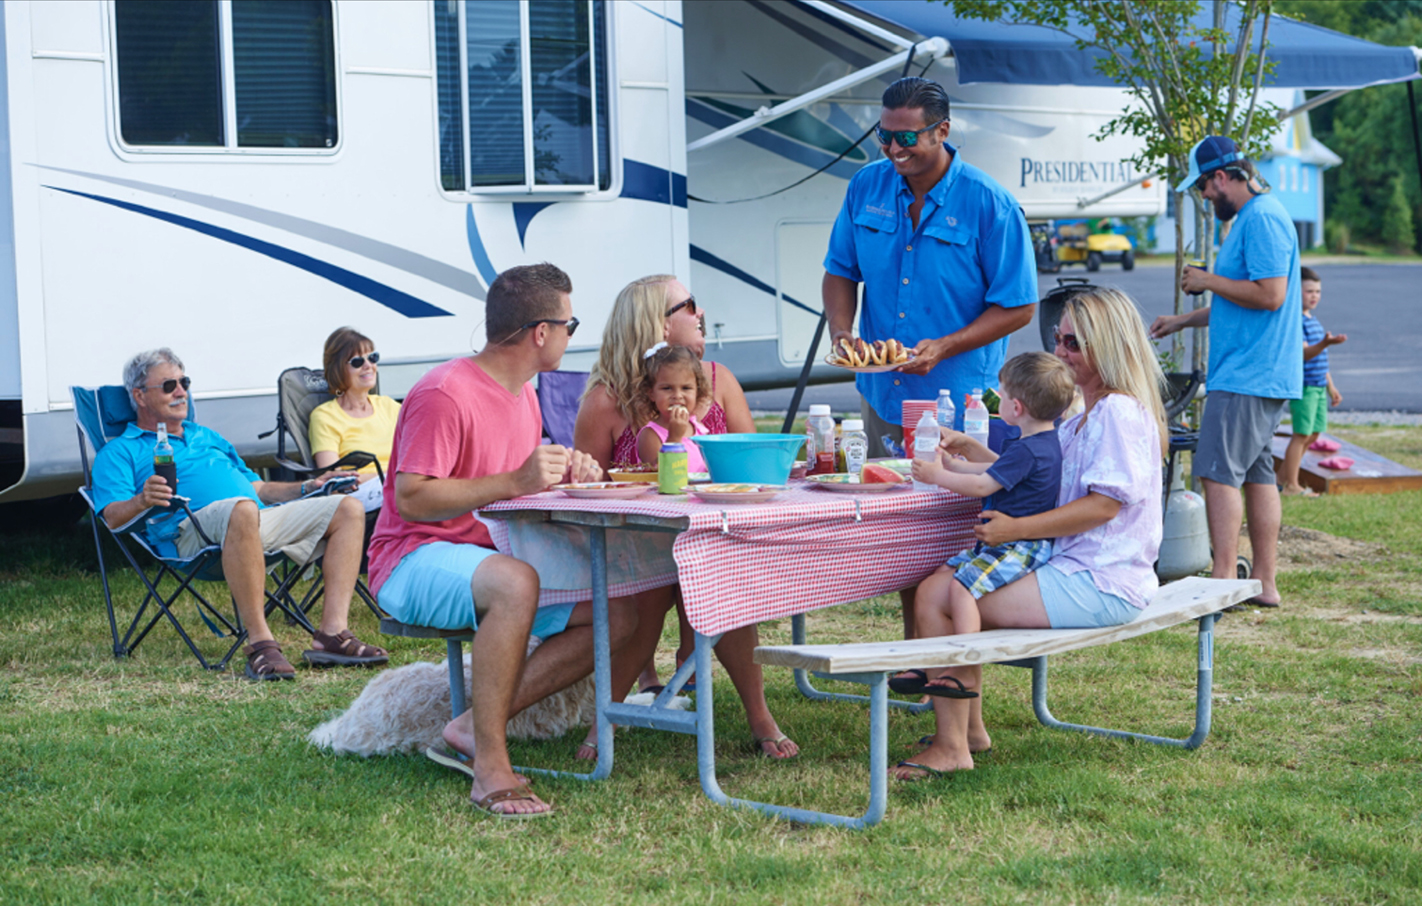 Families gather around a picnic table at RV park.